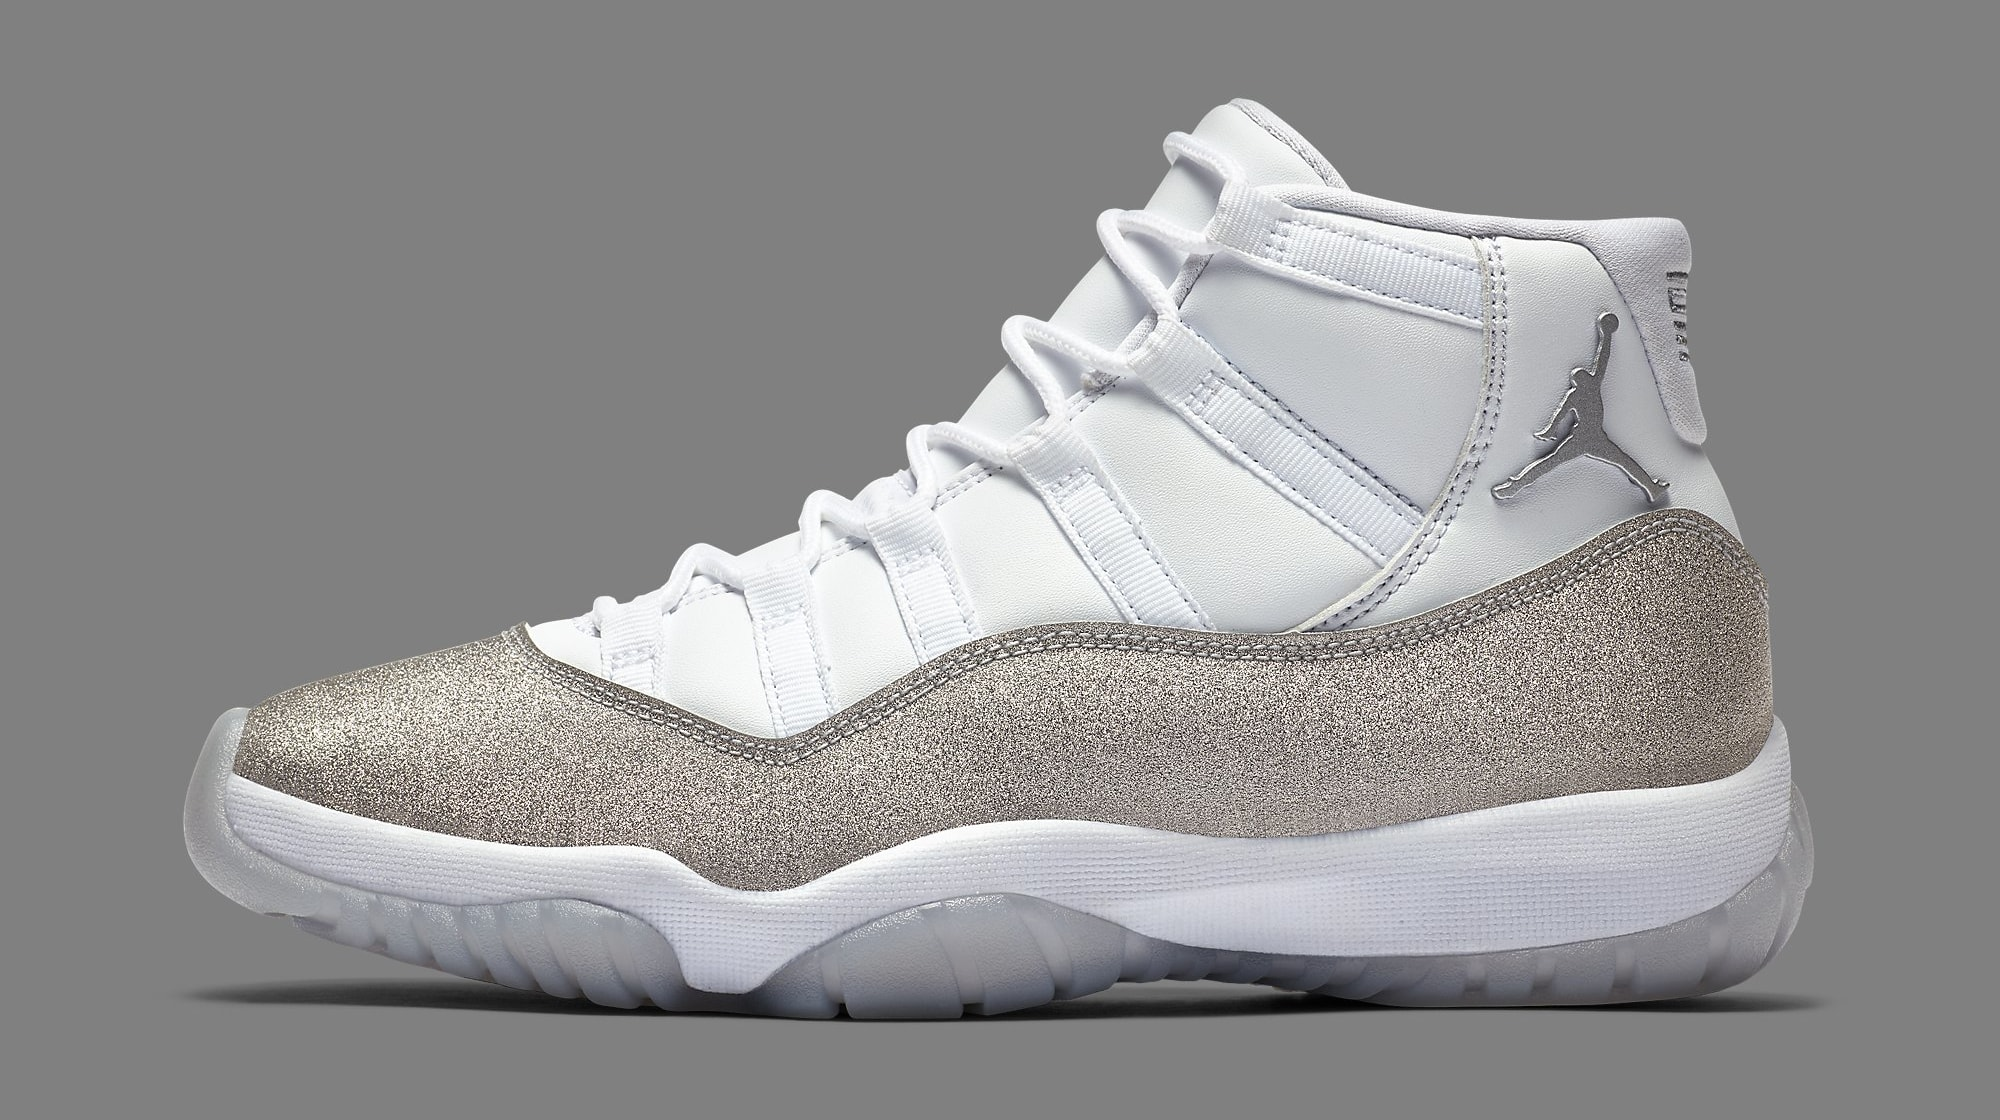 air-jordan-11-xi-womens-vast-grey-metallic-silver-ar0715-100-lateral